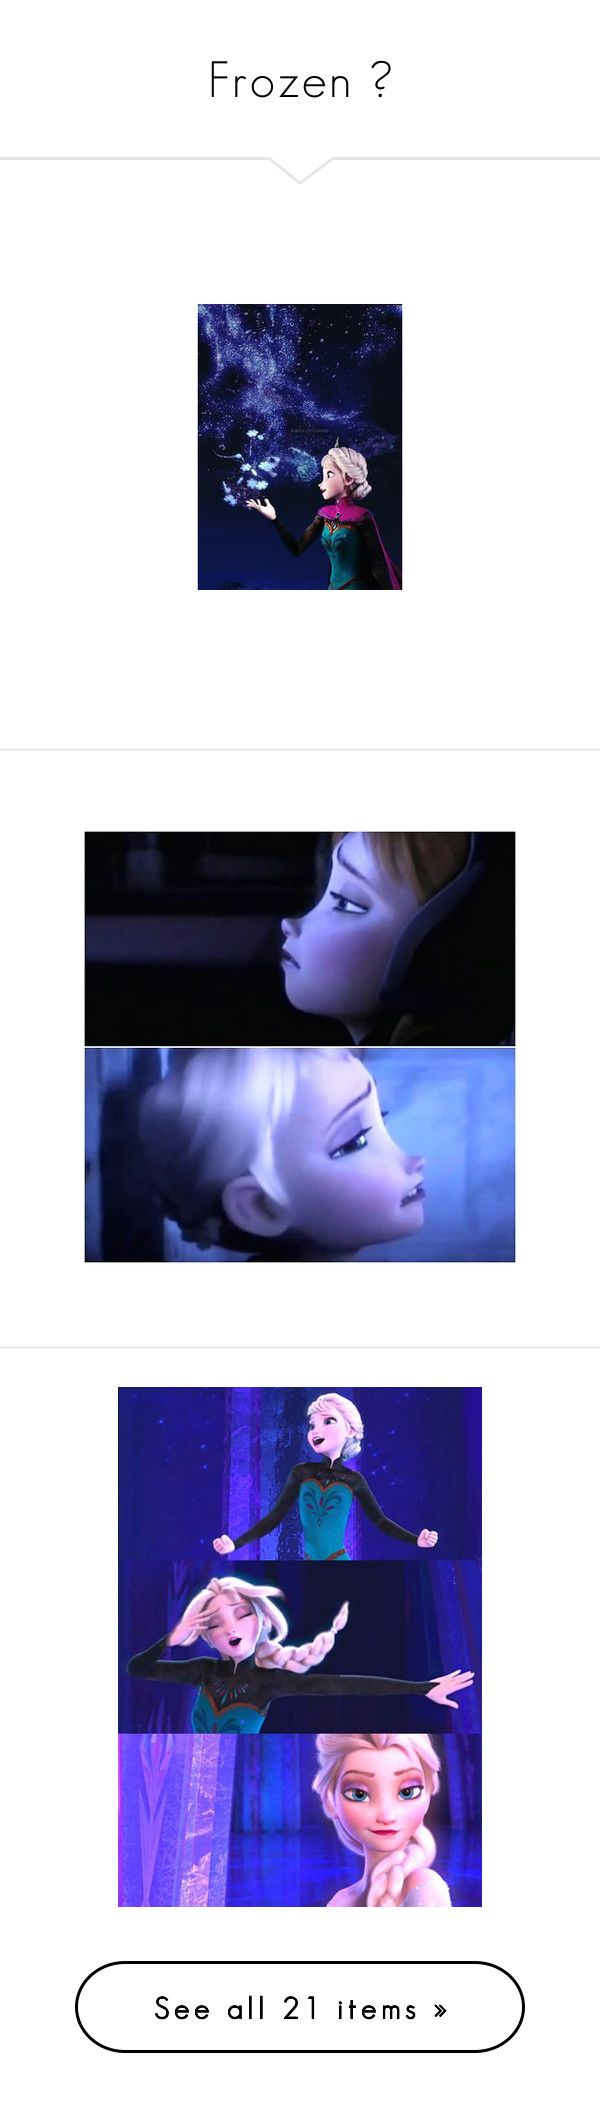 """Frozen ♥"" by starstruck4ever ❤ liked on Polyvore featuring disney, frozen, elsa, pictures, backgrounds, costumes, icon pictures, disney icons, snow queen costume and pics"